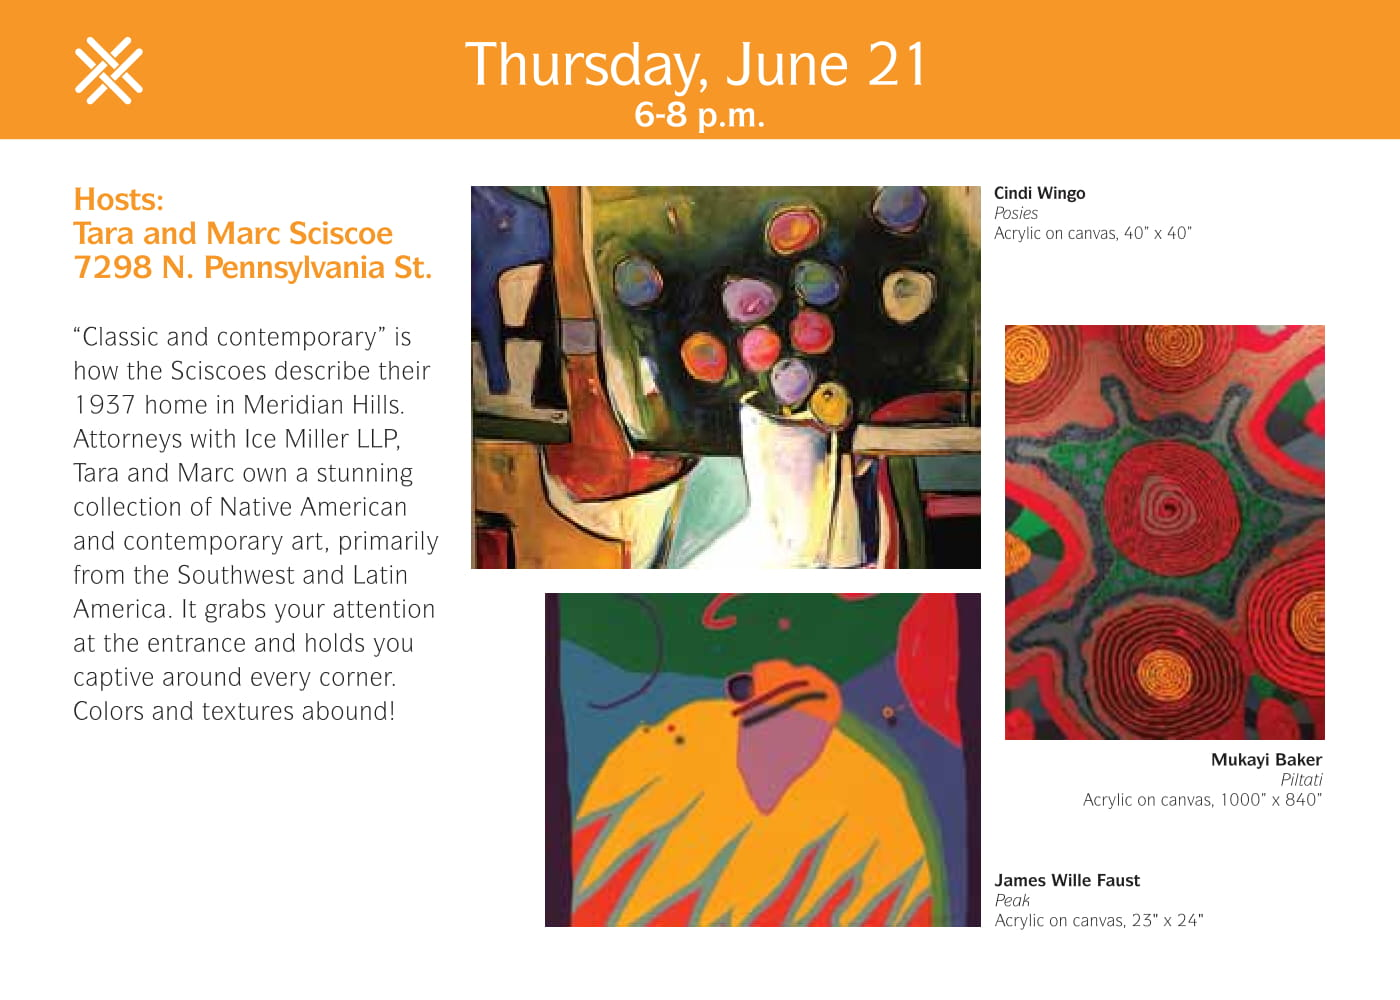 """Thursday, June 21, 6-8 p.m. Hosts: Tara and Marc Sciscoe 7298 N. Pennsylvania Street. """"Classic and contemporary"""" is how the Sciscies describe their 1937 home in Meridian Hills. Attorneys with Ice Miller LLP, Tara and Marc own a stunning collection of Nati"""